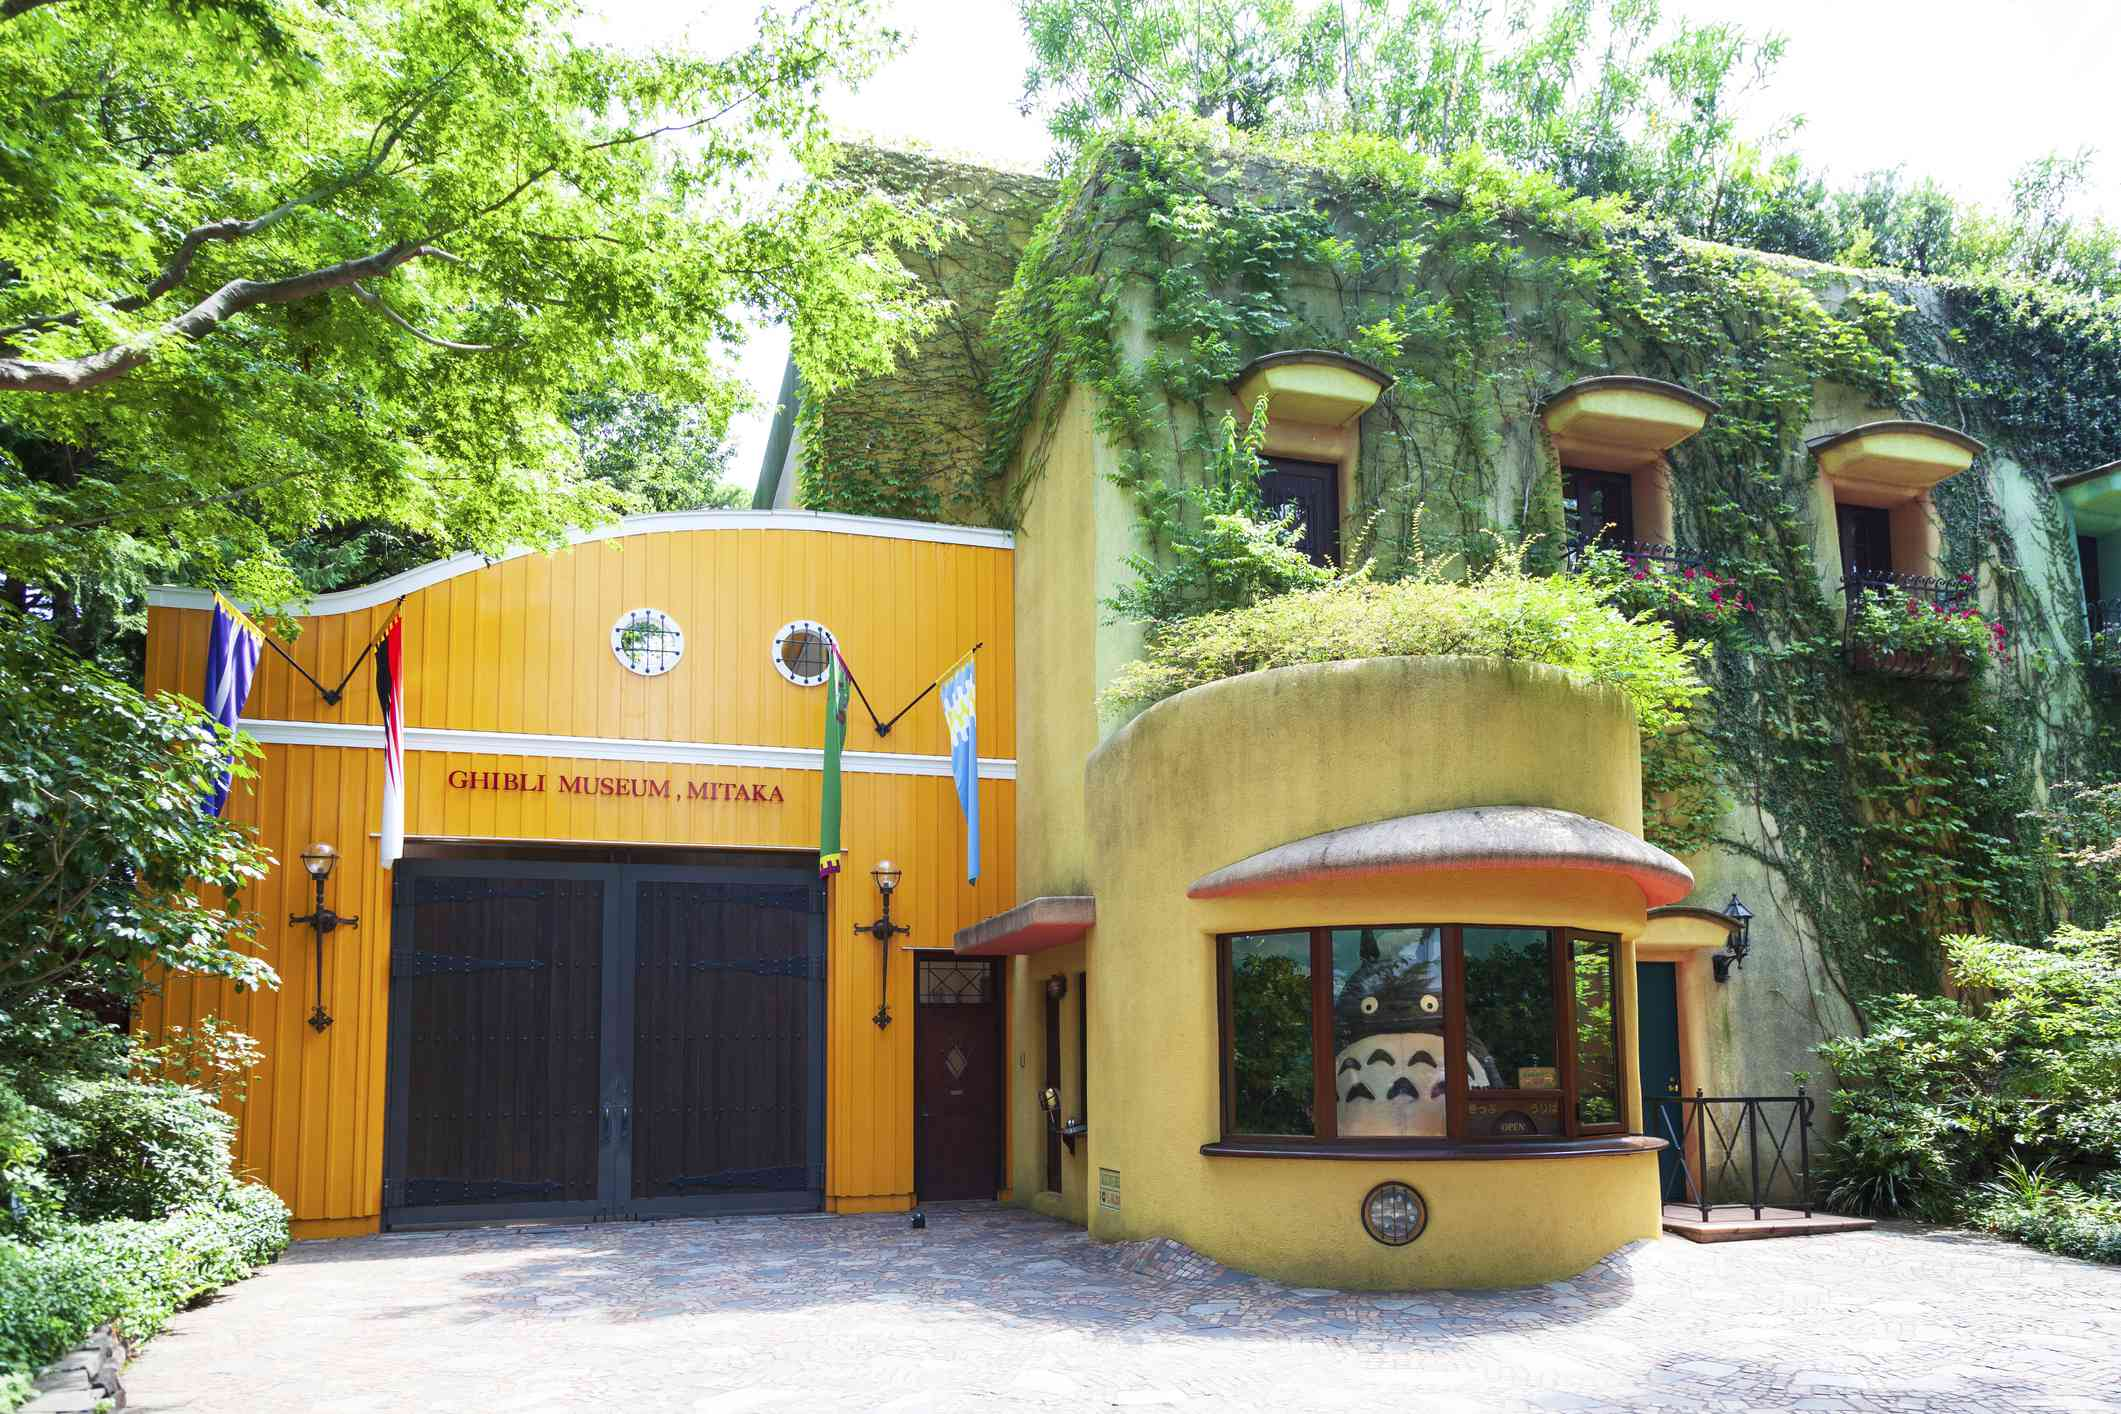 entrance to the Ghibli museum with a statue of Totoro peering out a window